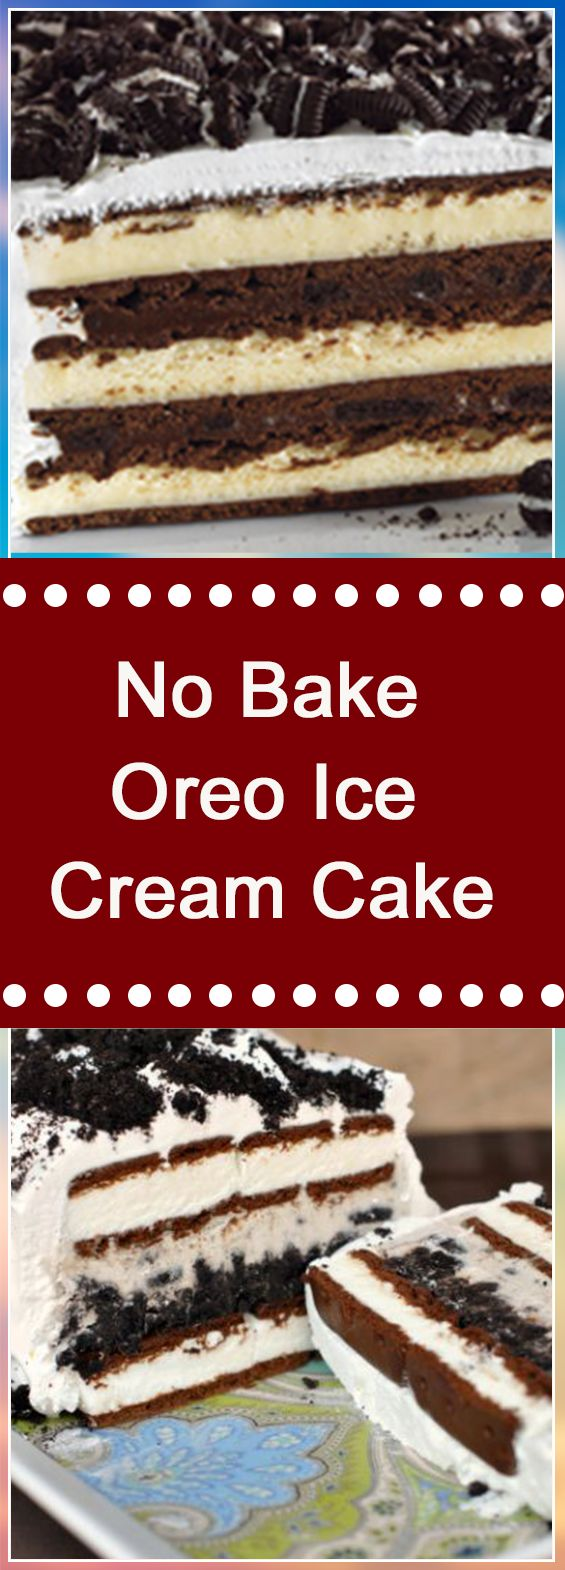 No Bake Oreo Ice Cream Cake #dessert #dessertrecipes #recipeideas #homemade #desserttable #appetizer